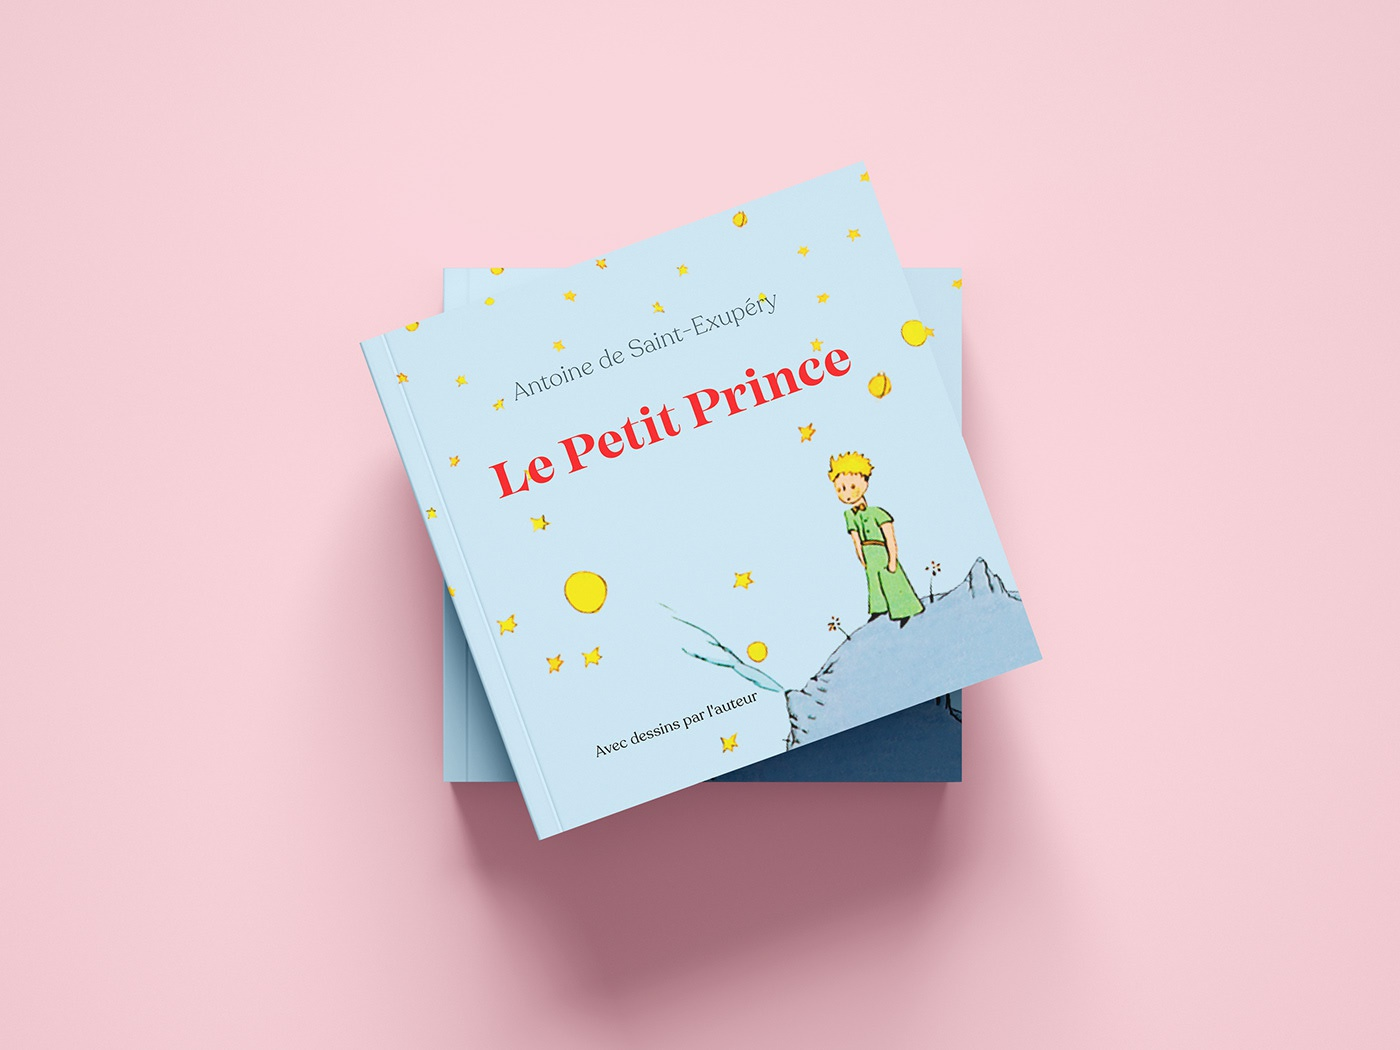 Design Du Petit Prince Livre By Kristina Vilyams On Dribbble